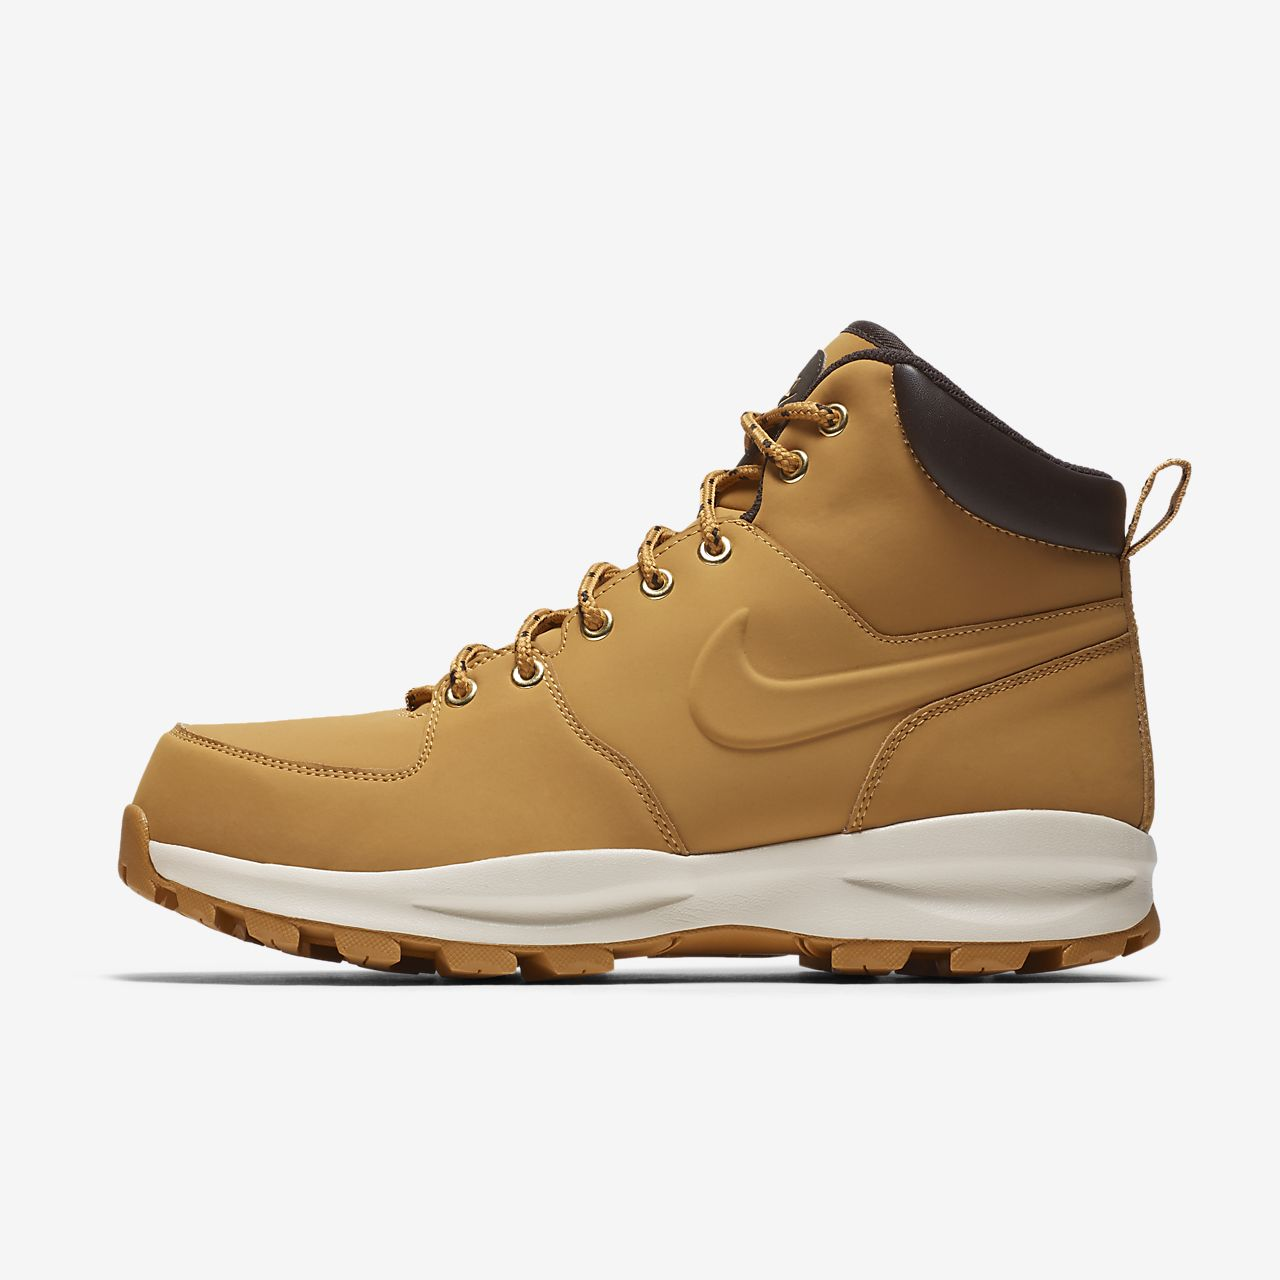 new concept 9f960 4bd00 ... Chaussure Nike Manoa pour Homme